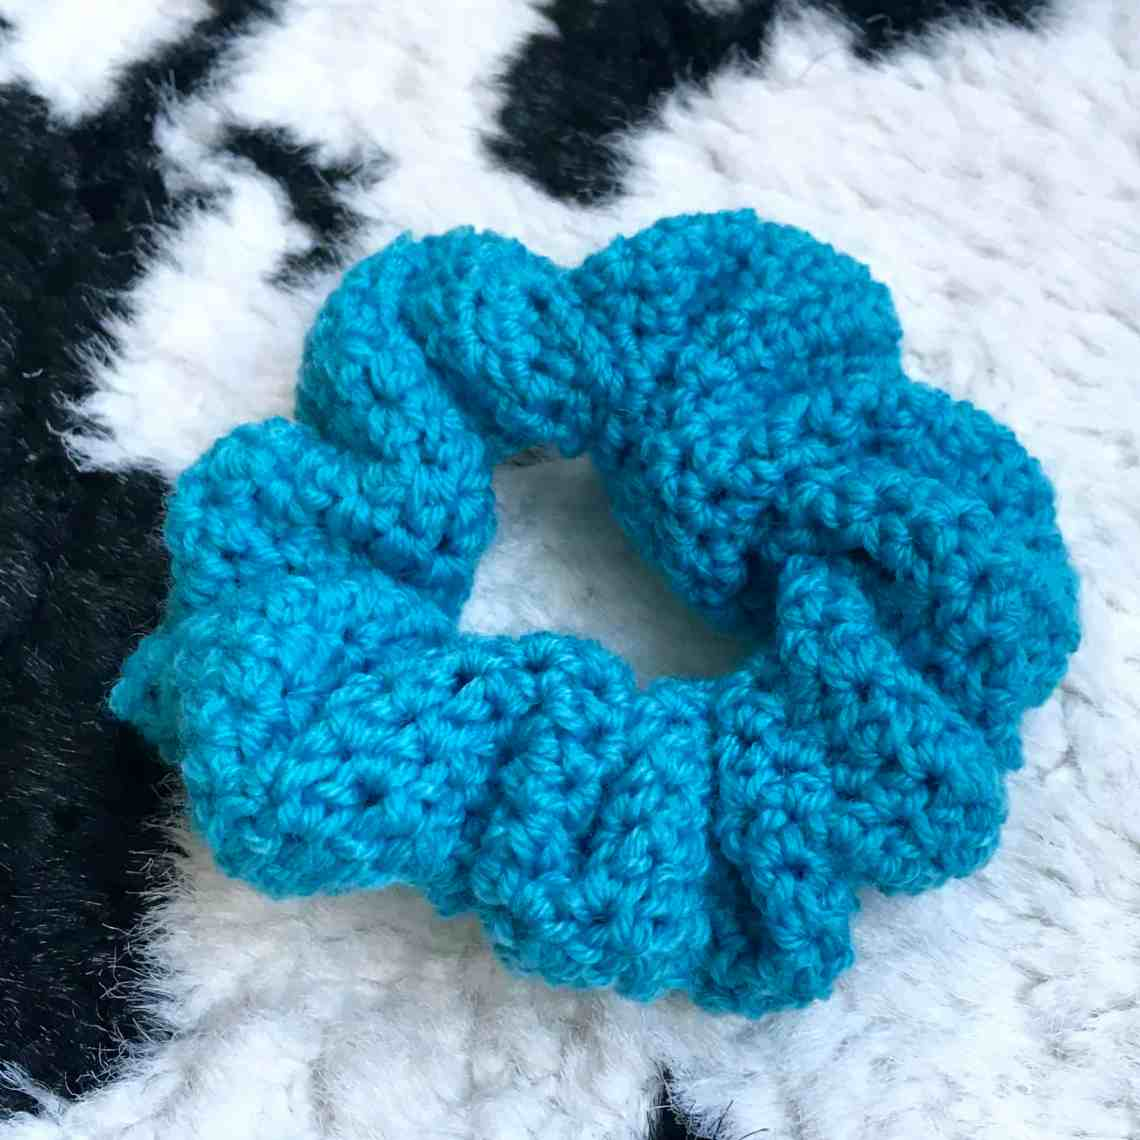 Blue crochet Scrunchie on animal print throw